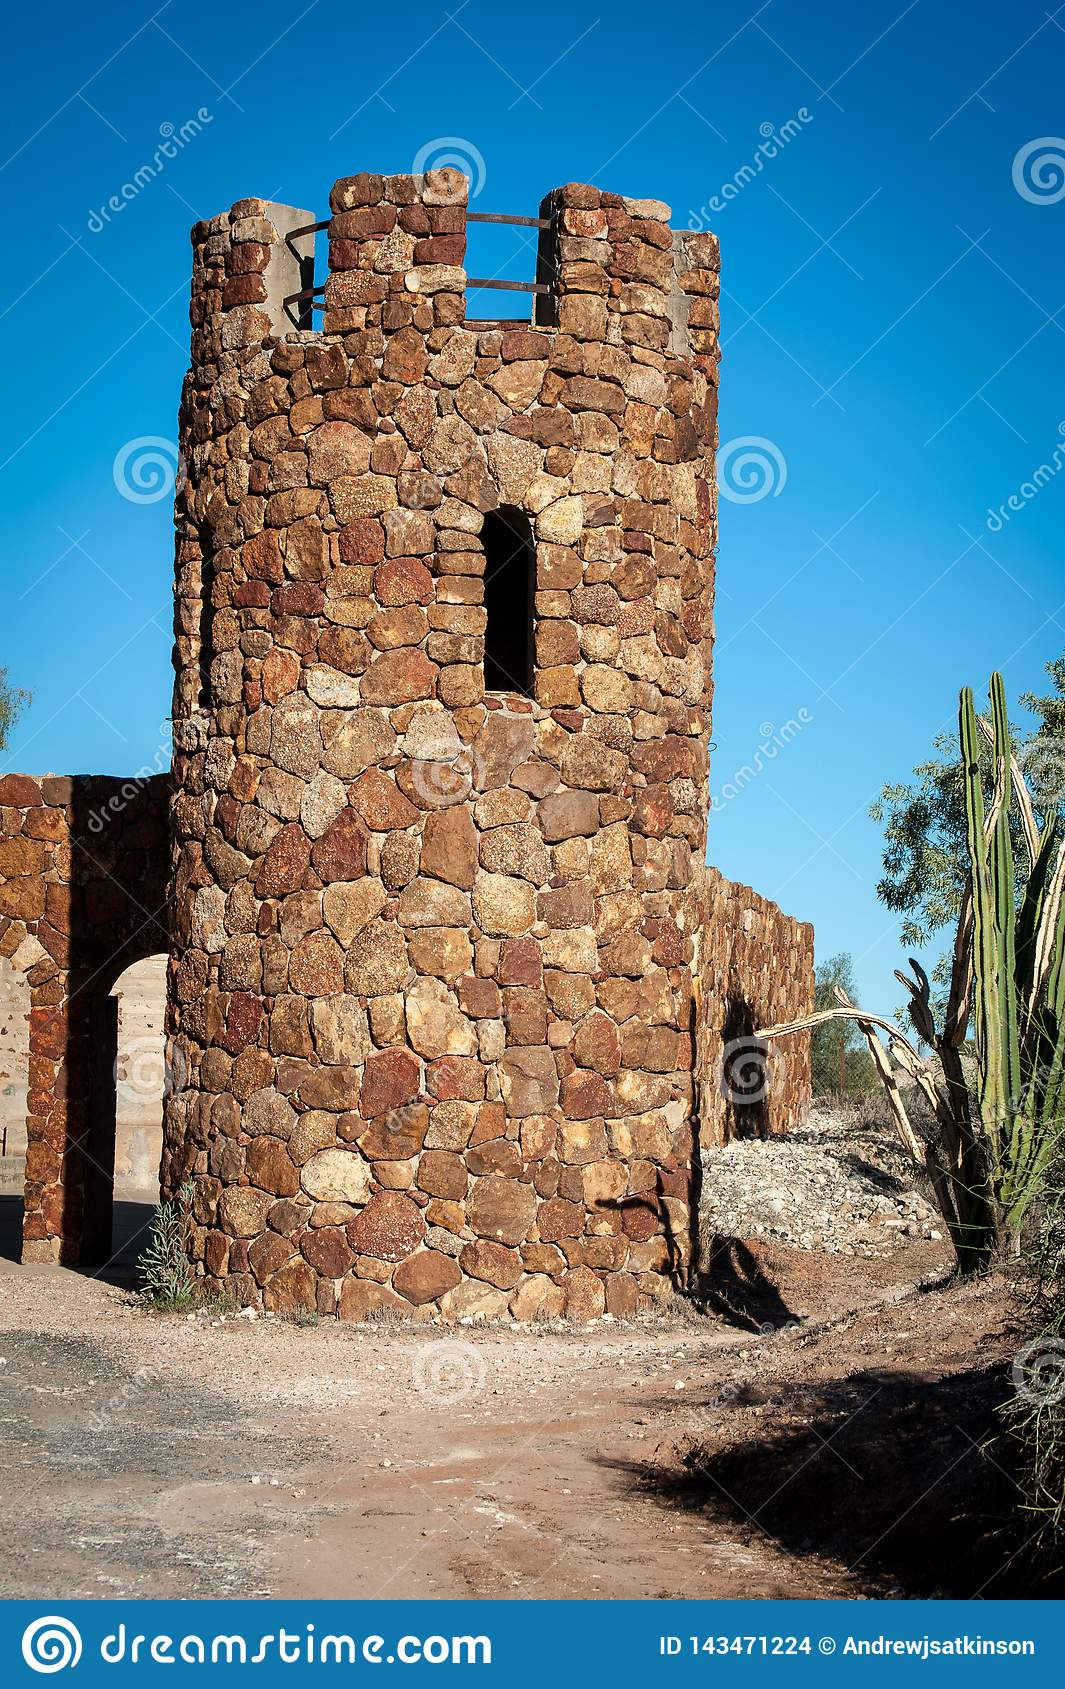 House or tower made of stone